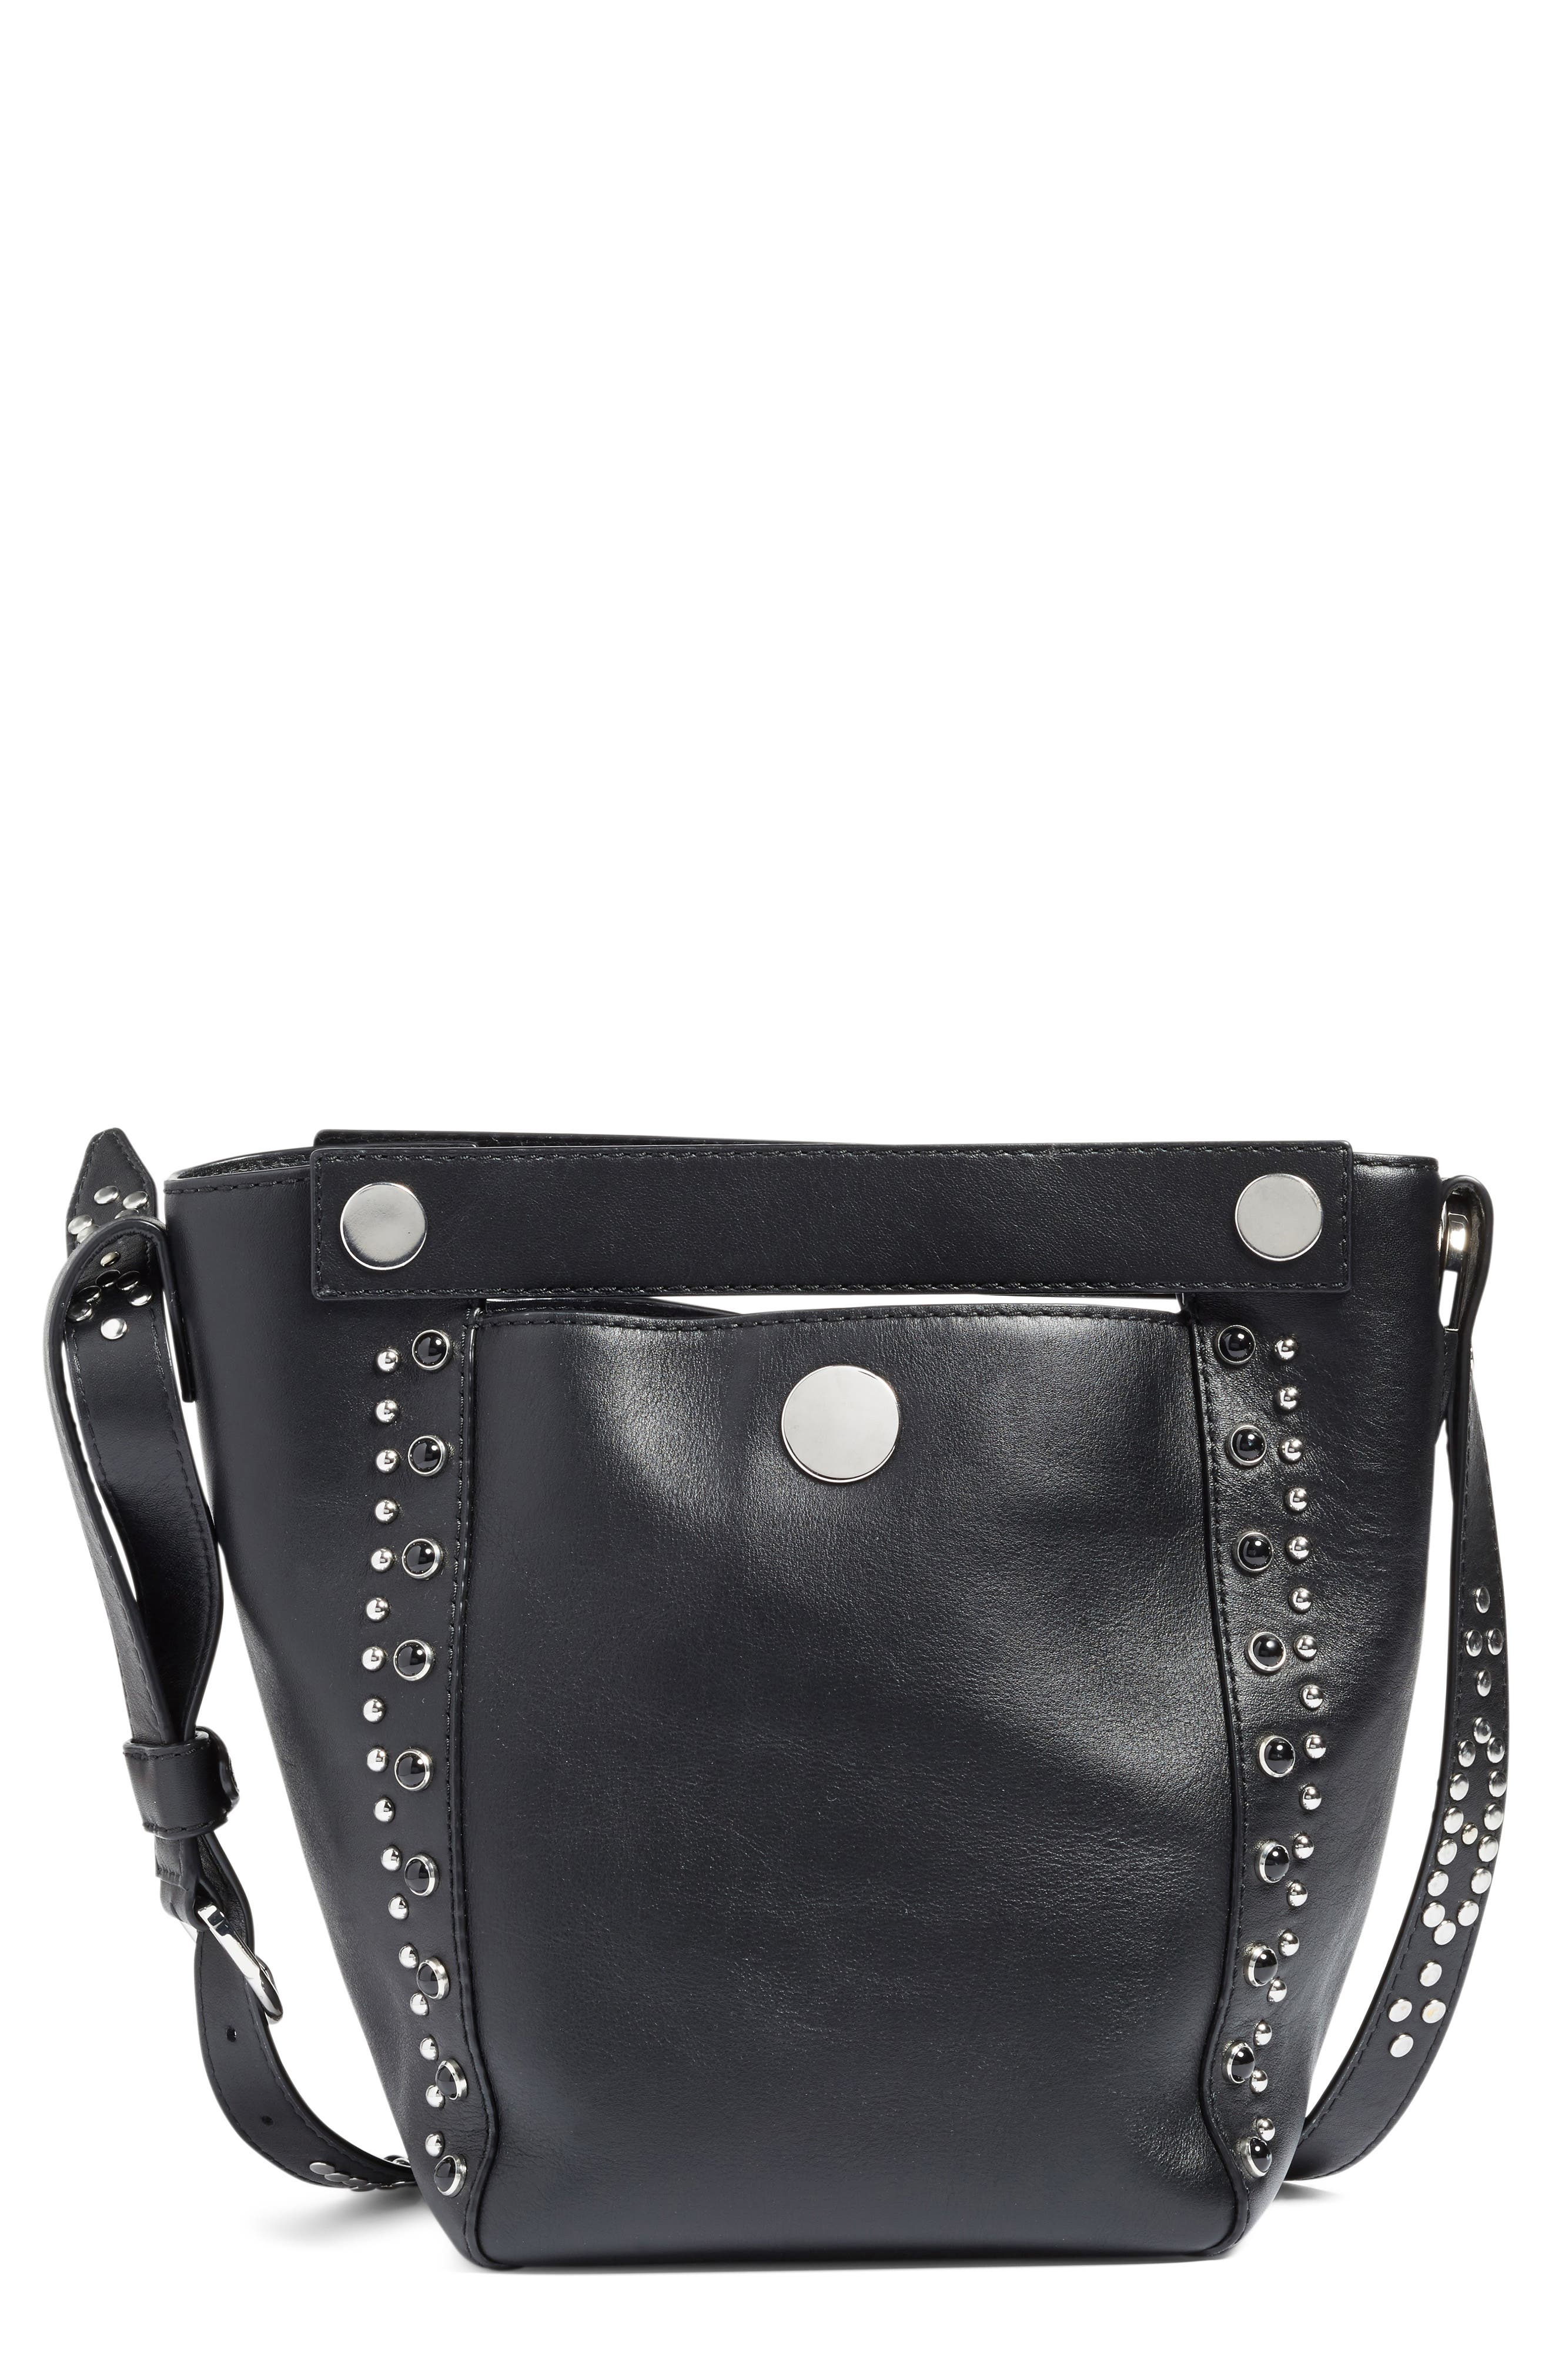 3.1 Phillip Lim Small Dolly Studded Leather Tote